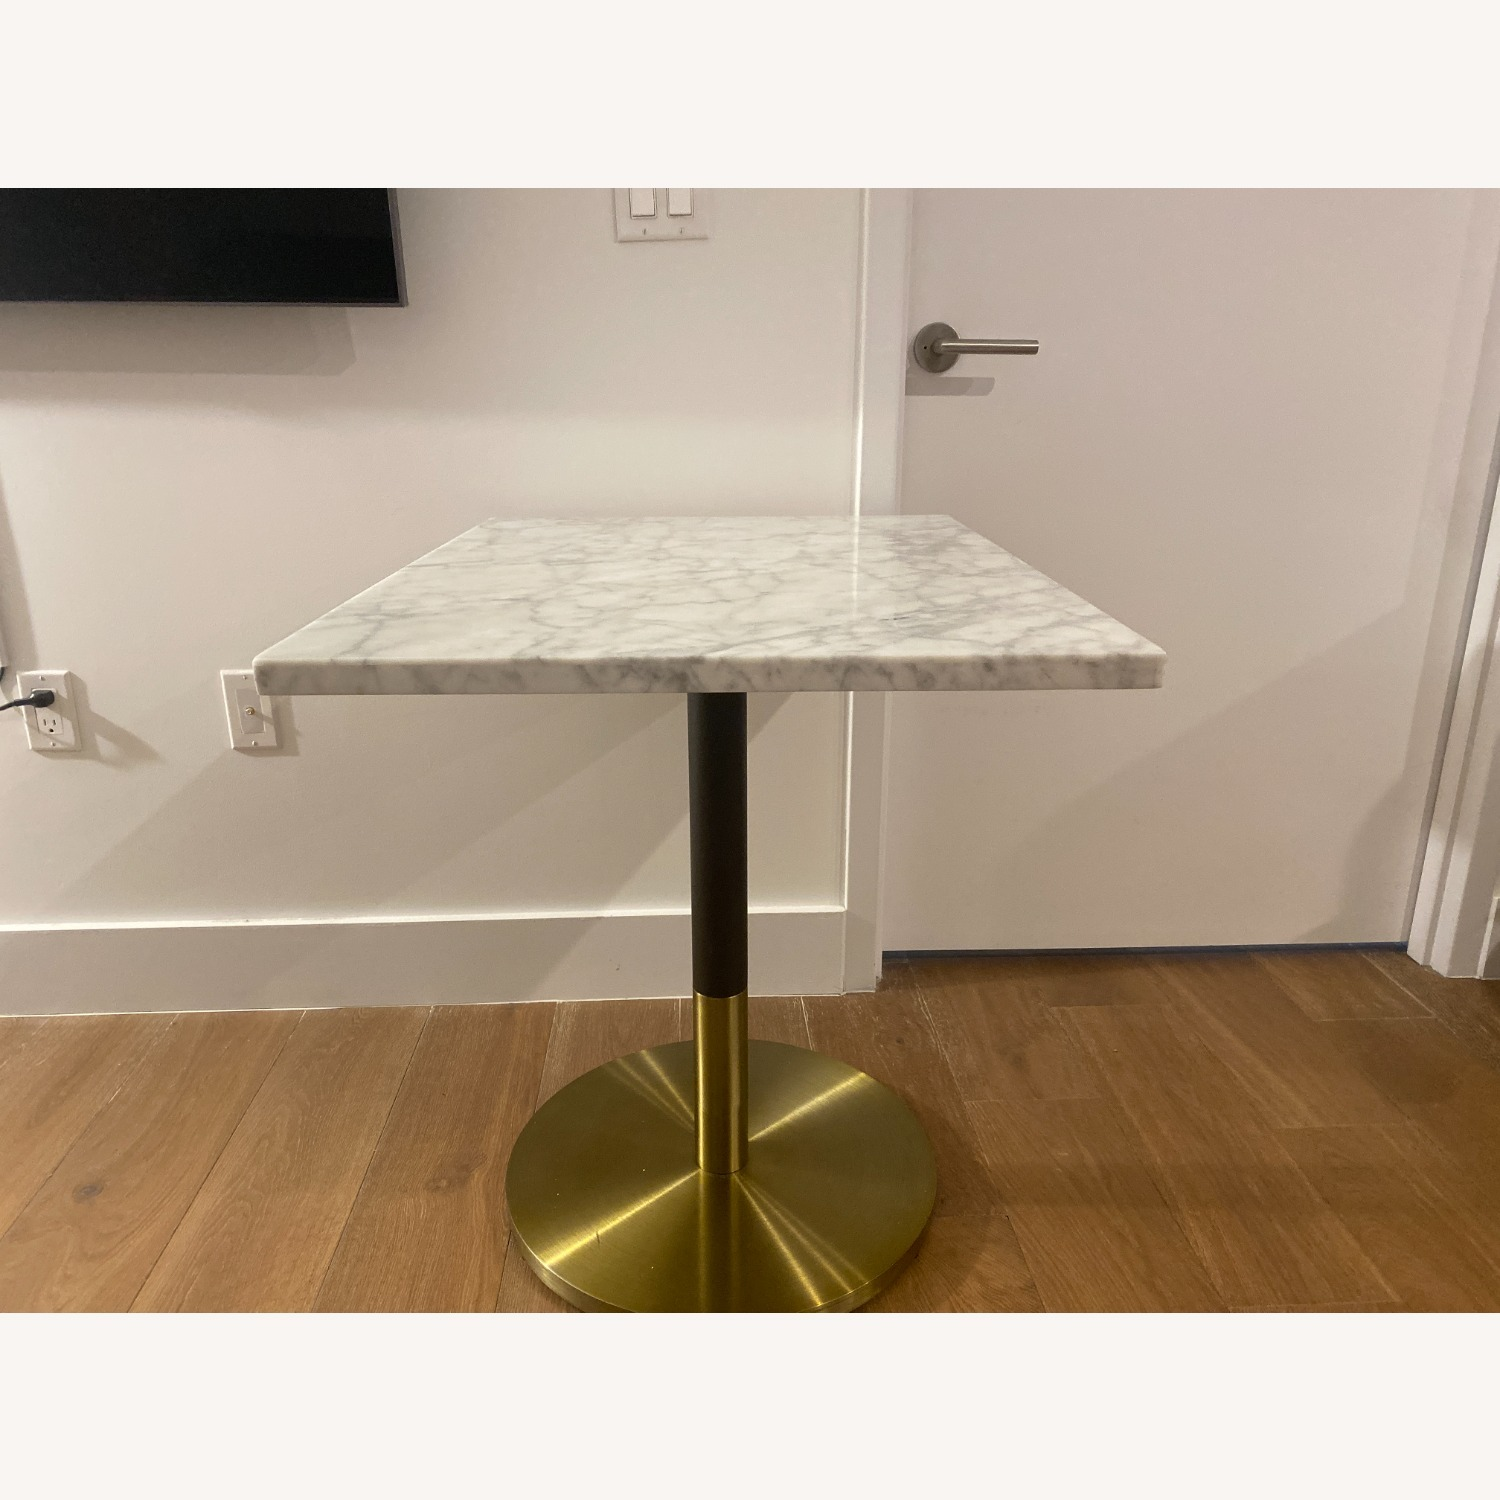 CB2 Marble Dining Table - image-1